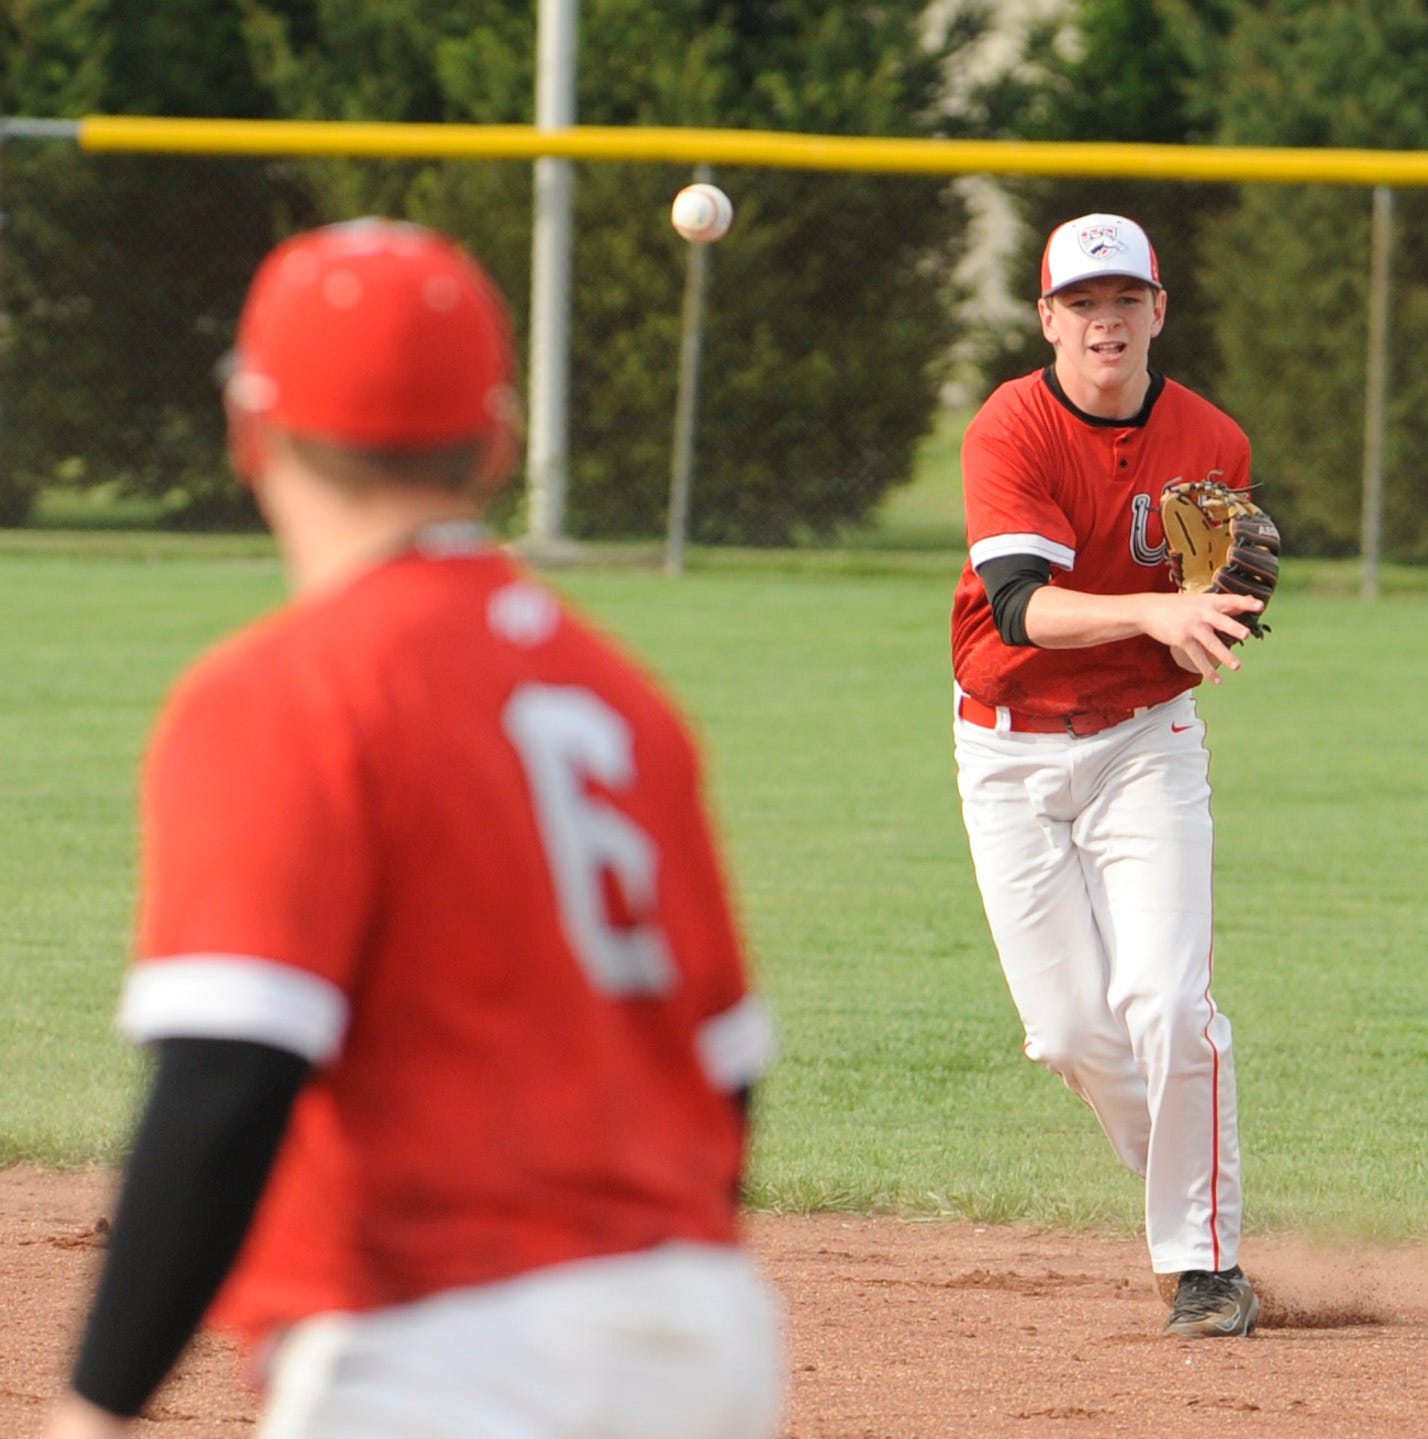 HS BASEBALL: Westfall, ZT, Unioto in three-way tie for first with WF's 2-0 win over Unioto